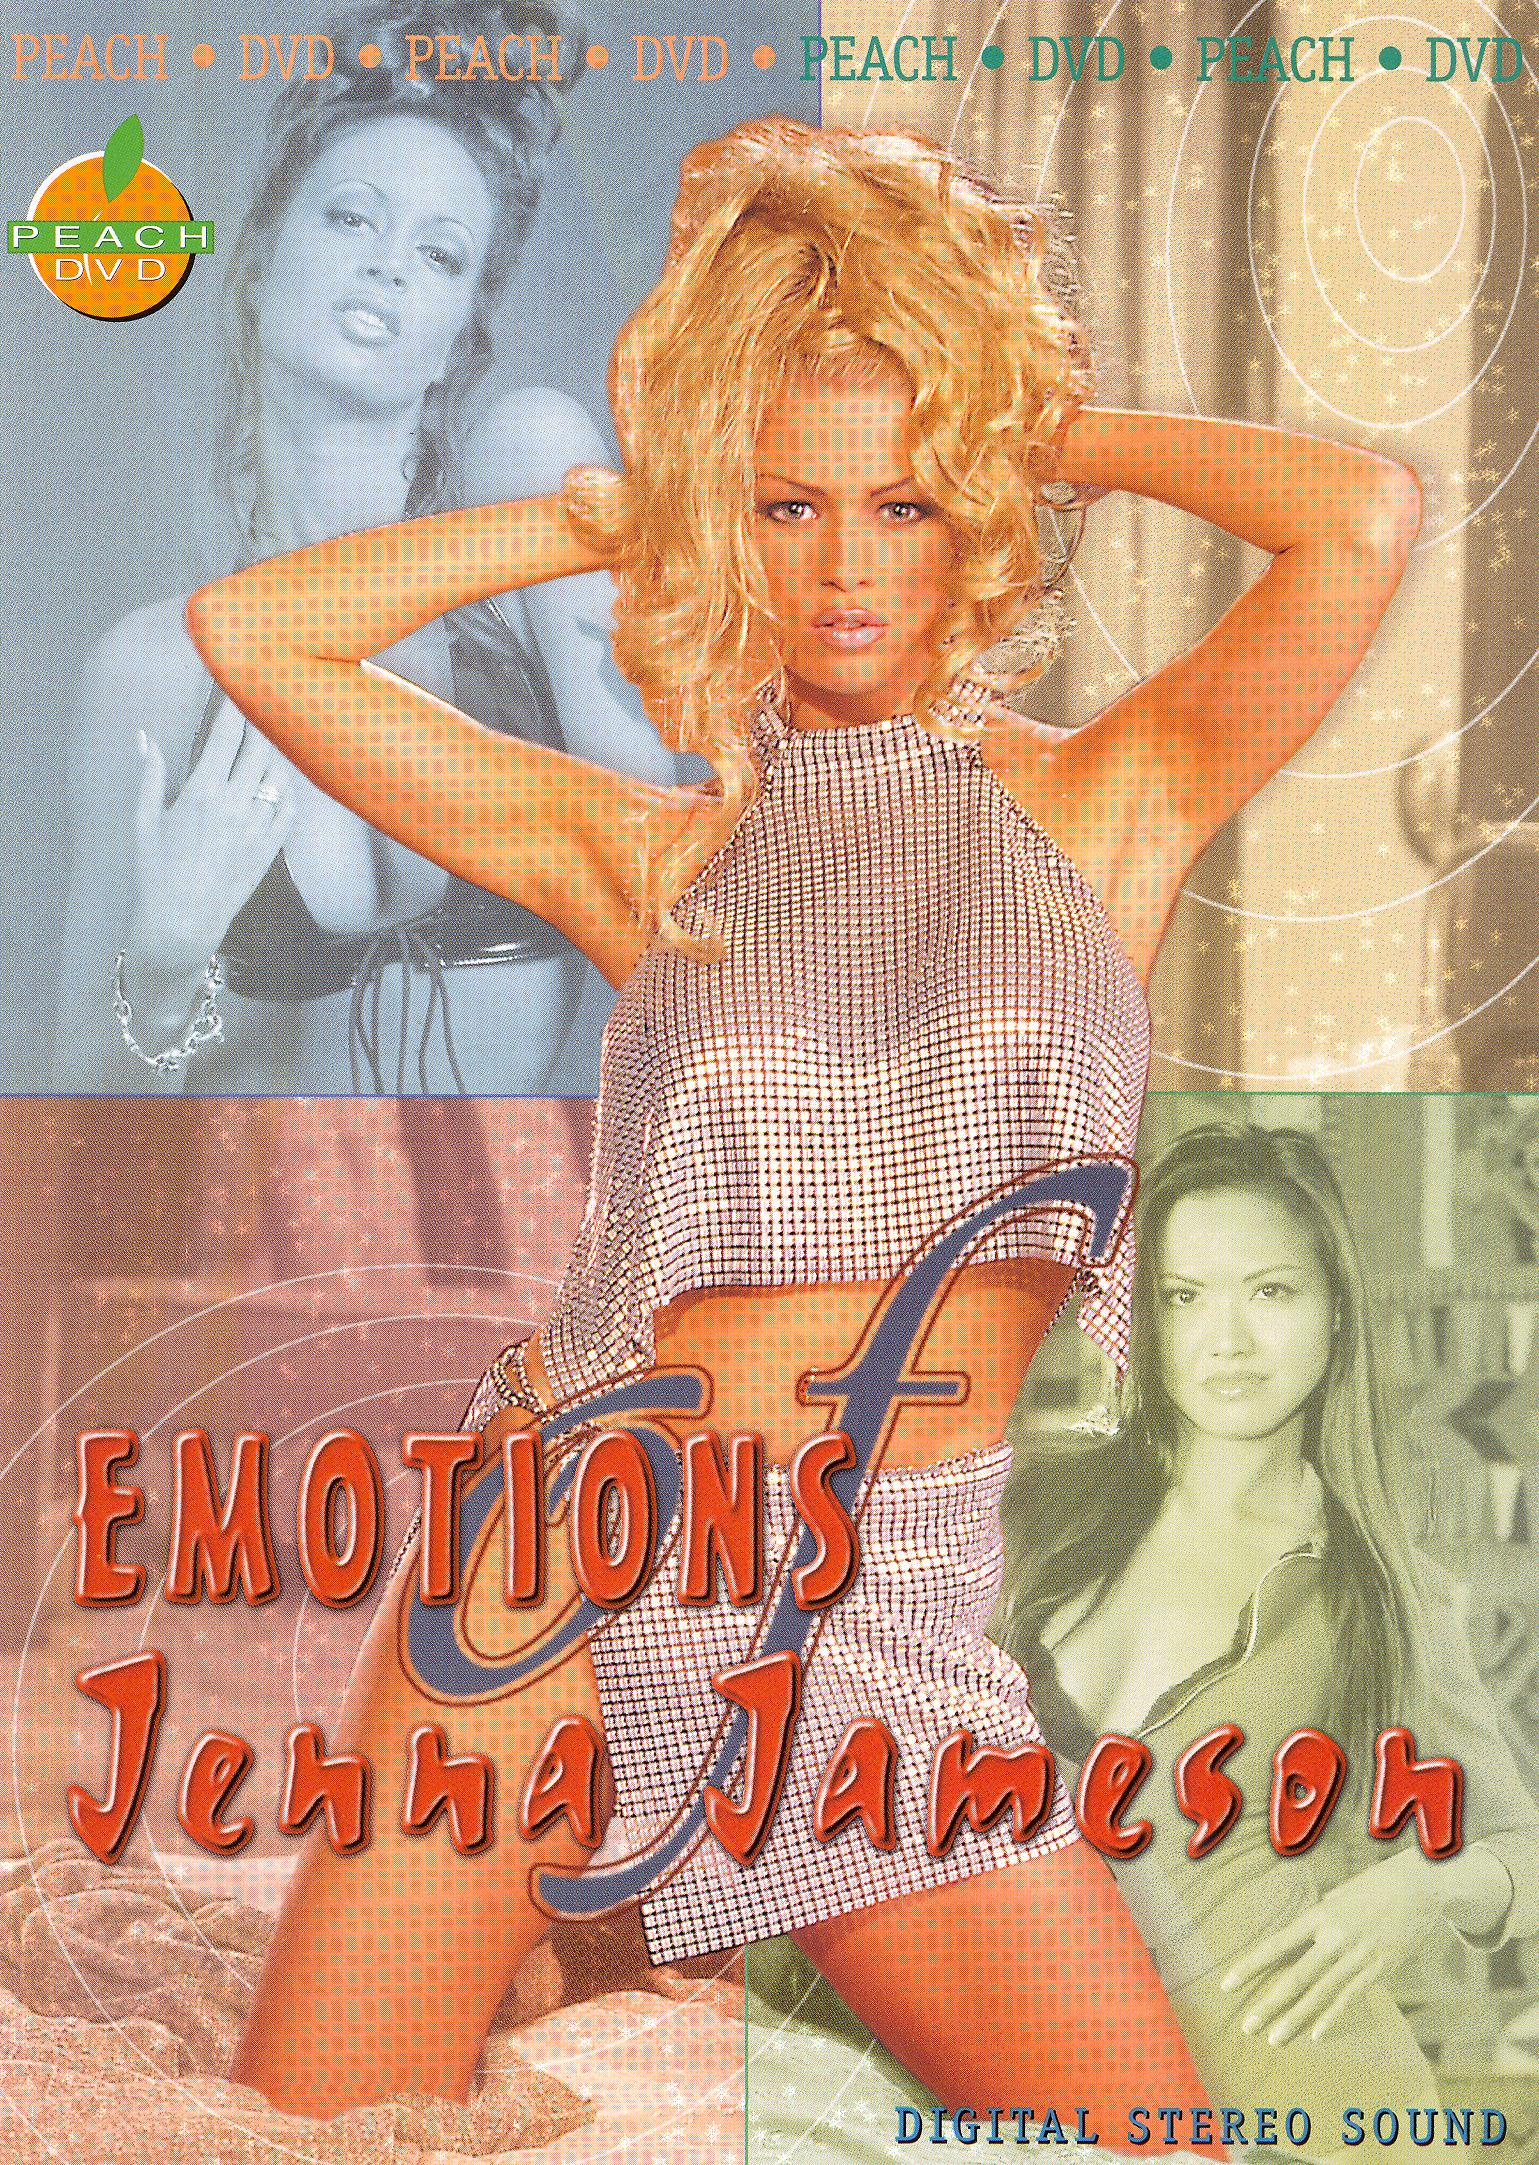 Emotions of Jenna Jameson